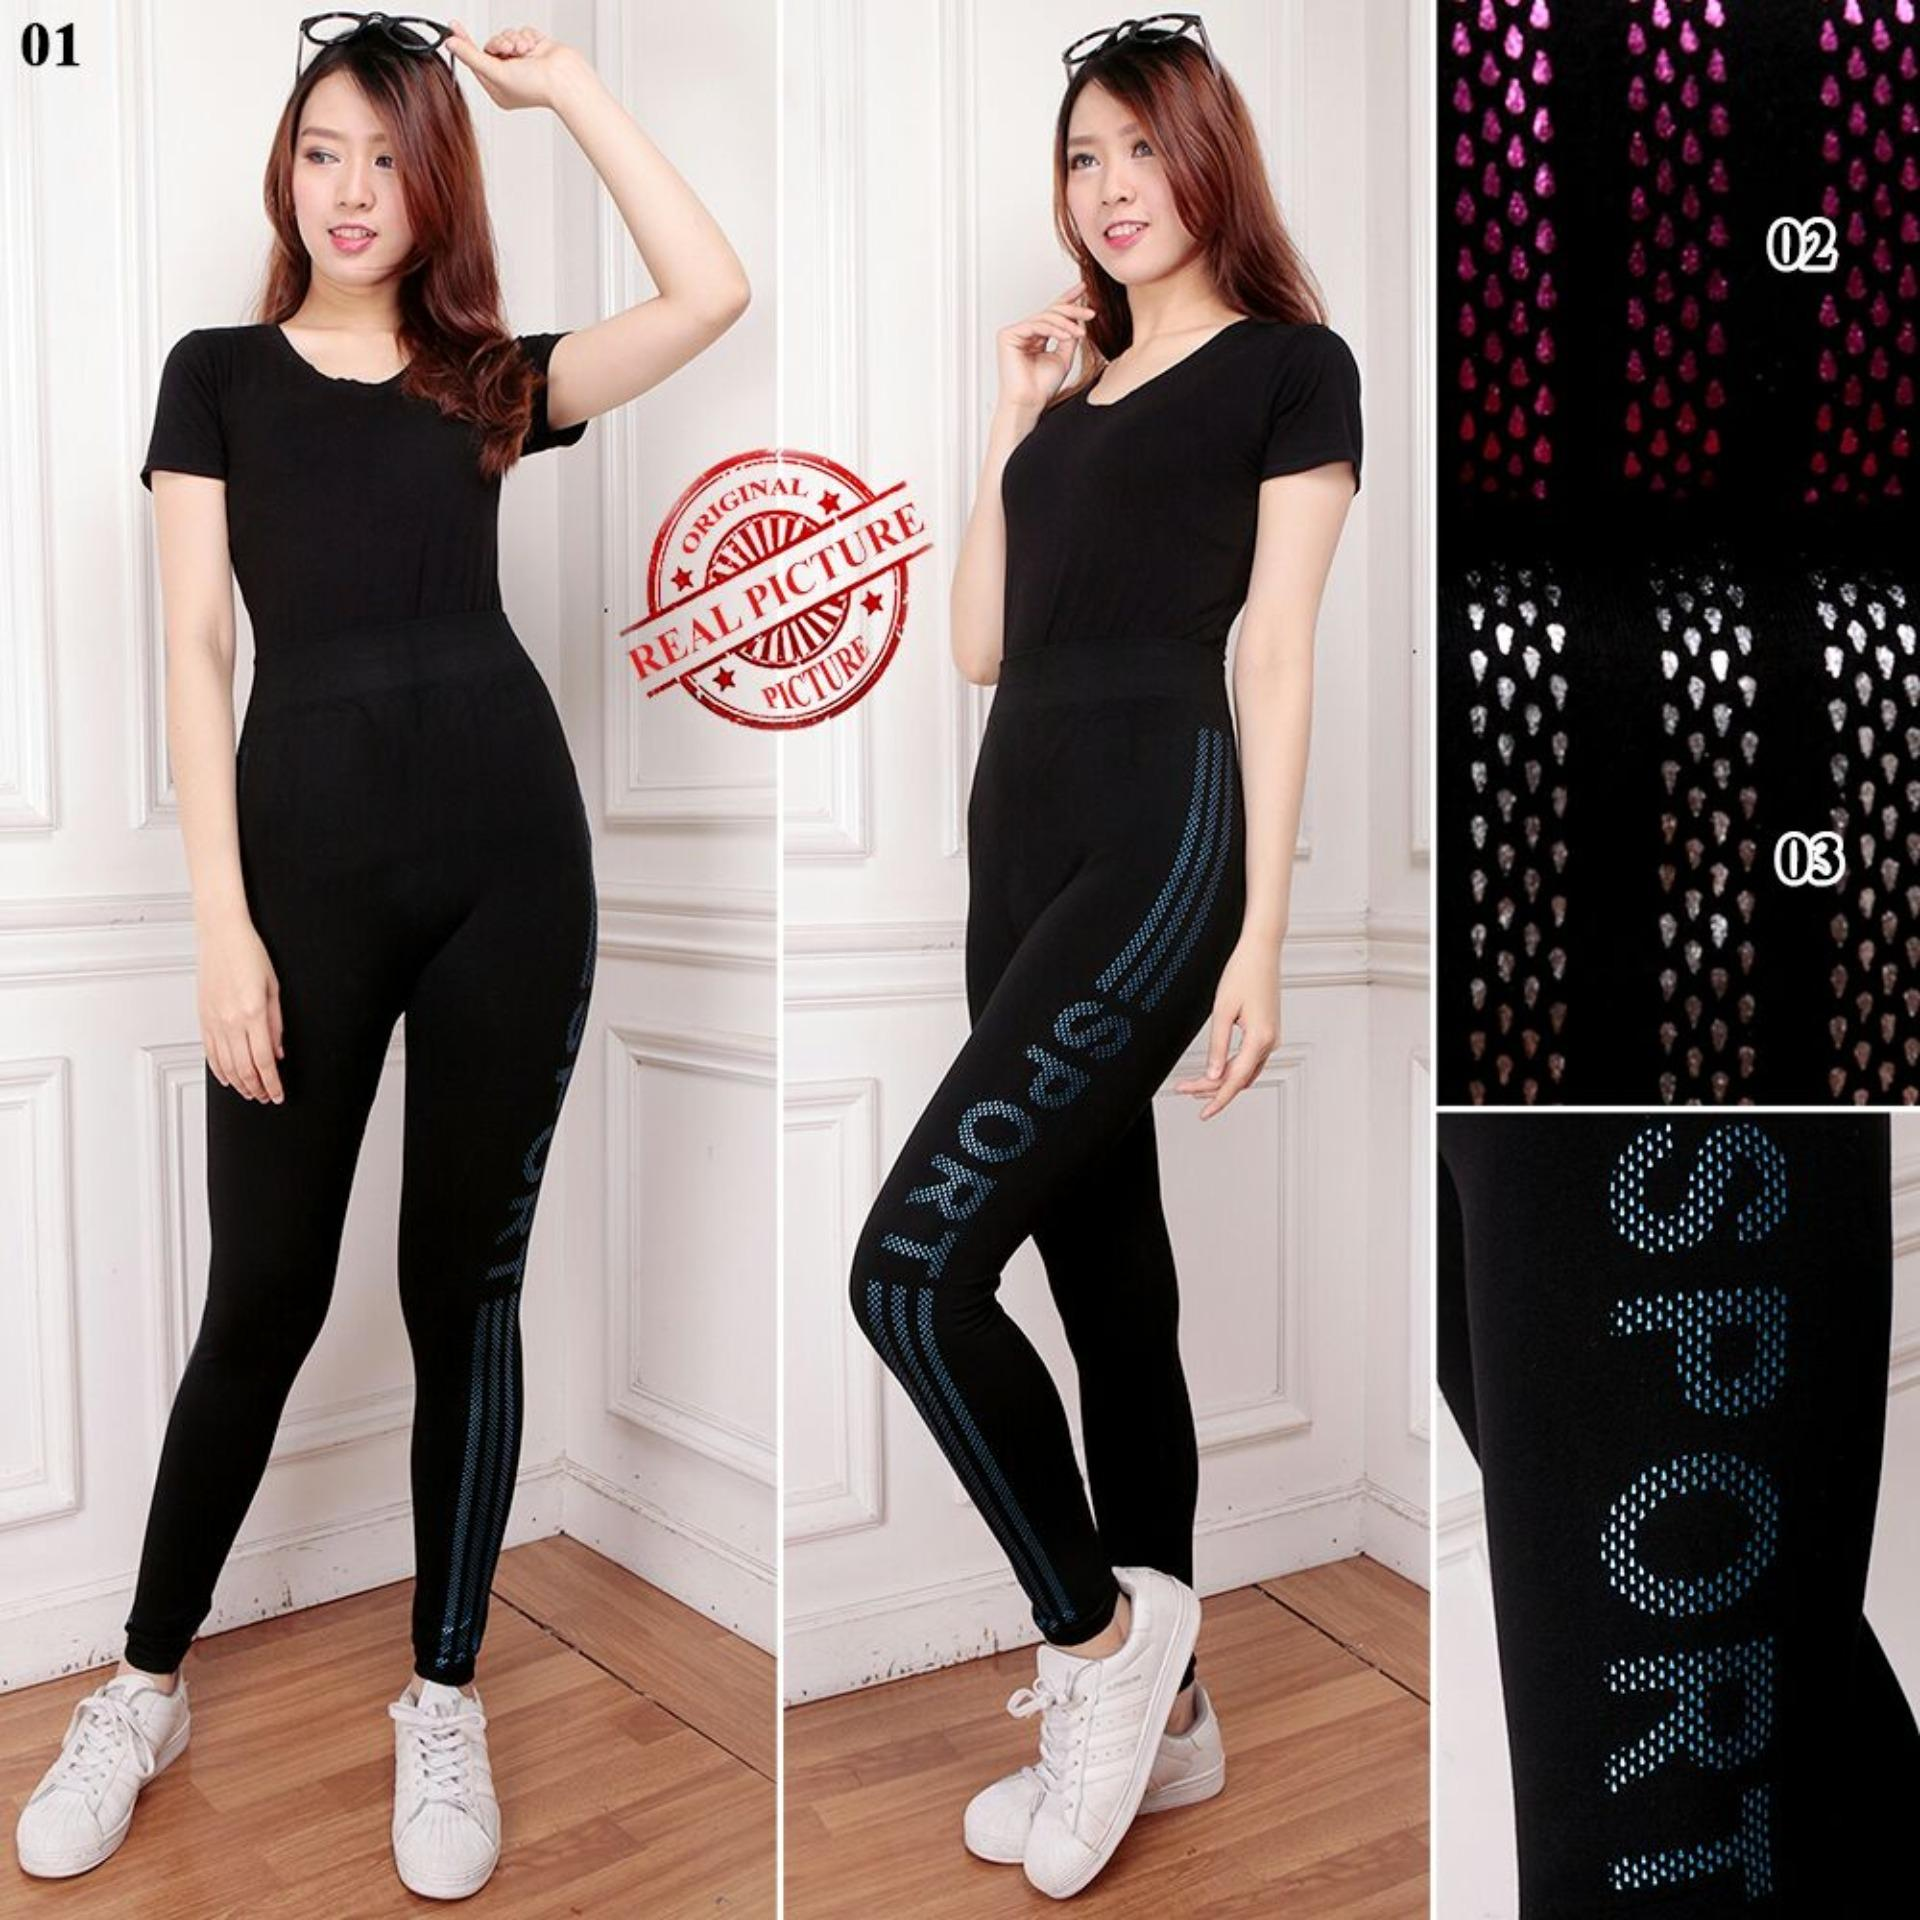 Jual Sb Collection Celana Panjang Novia Legging Senam Jumbo Wanita Import